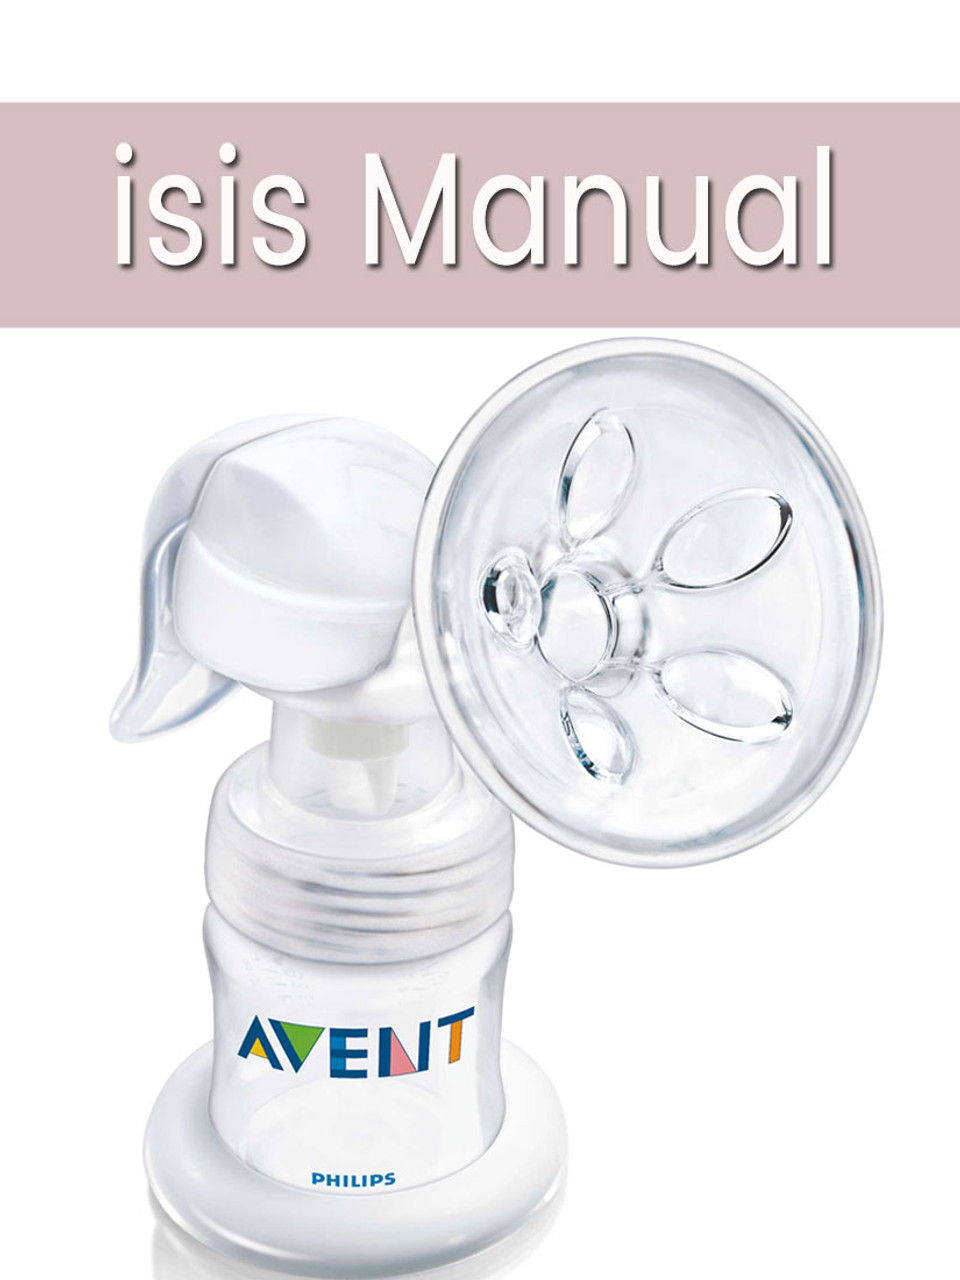 Philips Avent Manual Breast Pump Parts Order Online At